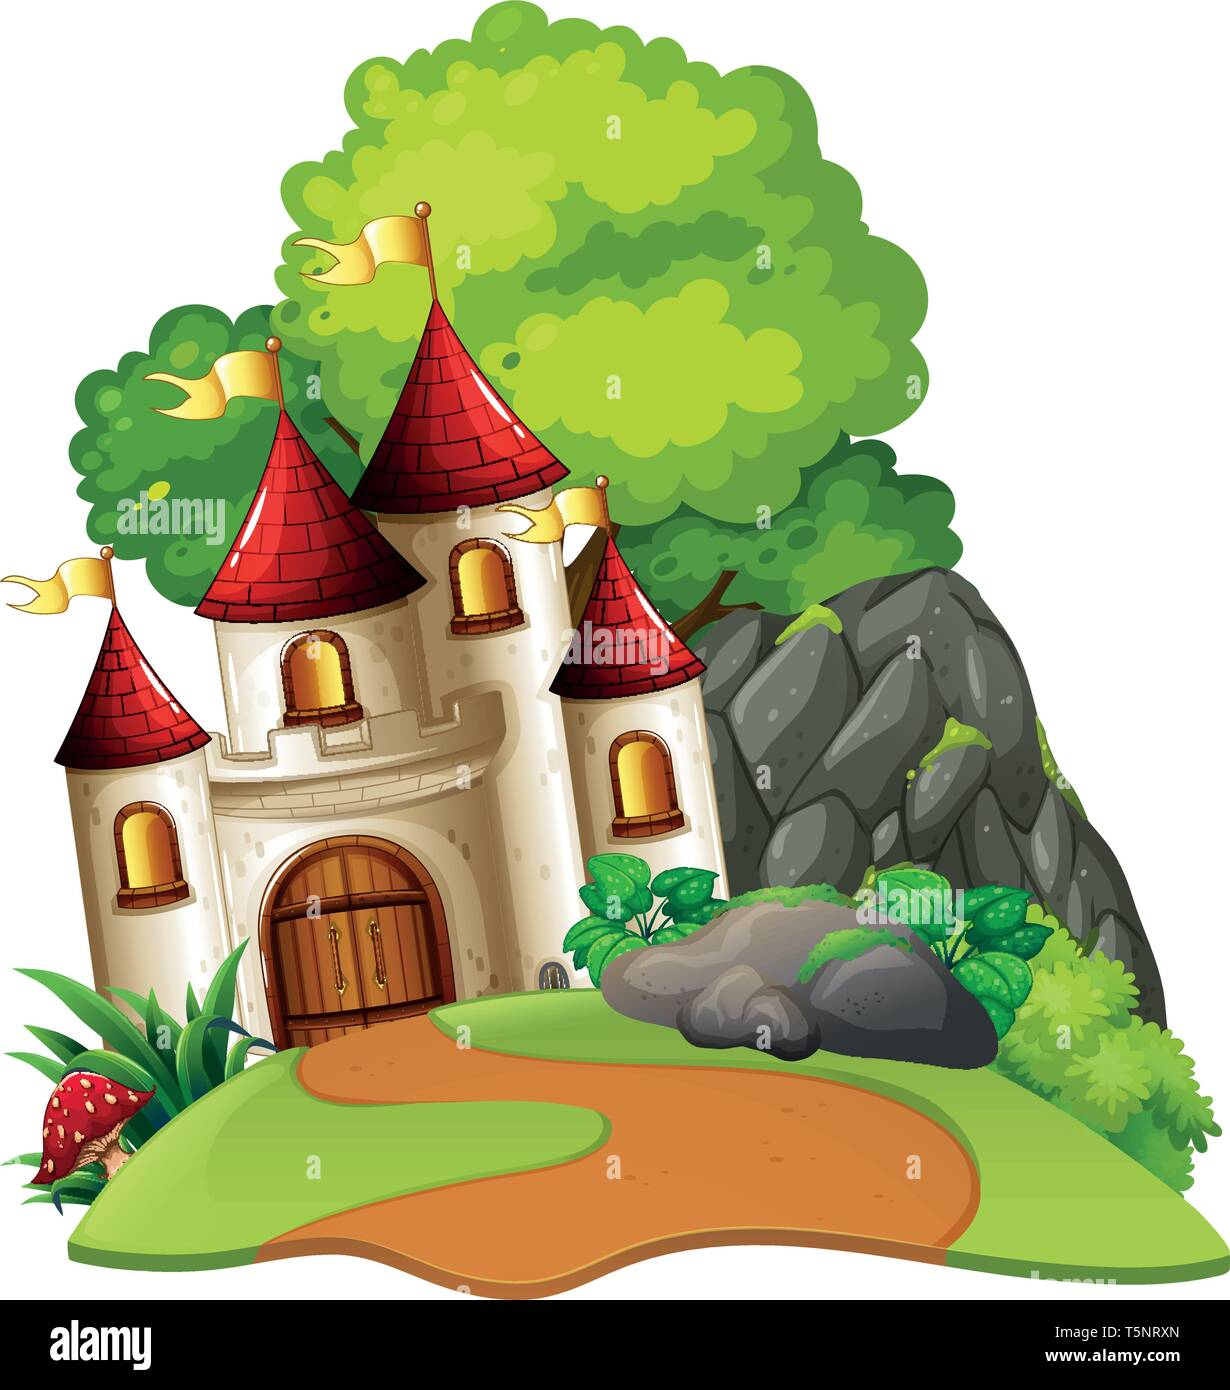 Castle in woods isolated scene illustration - Stock Image